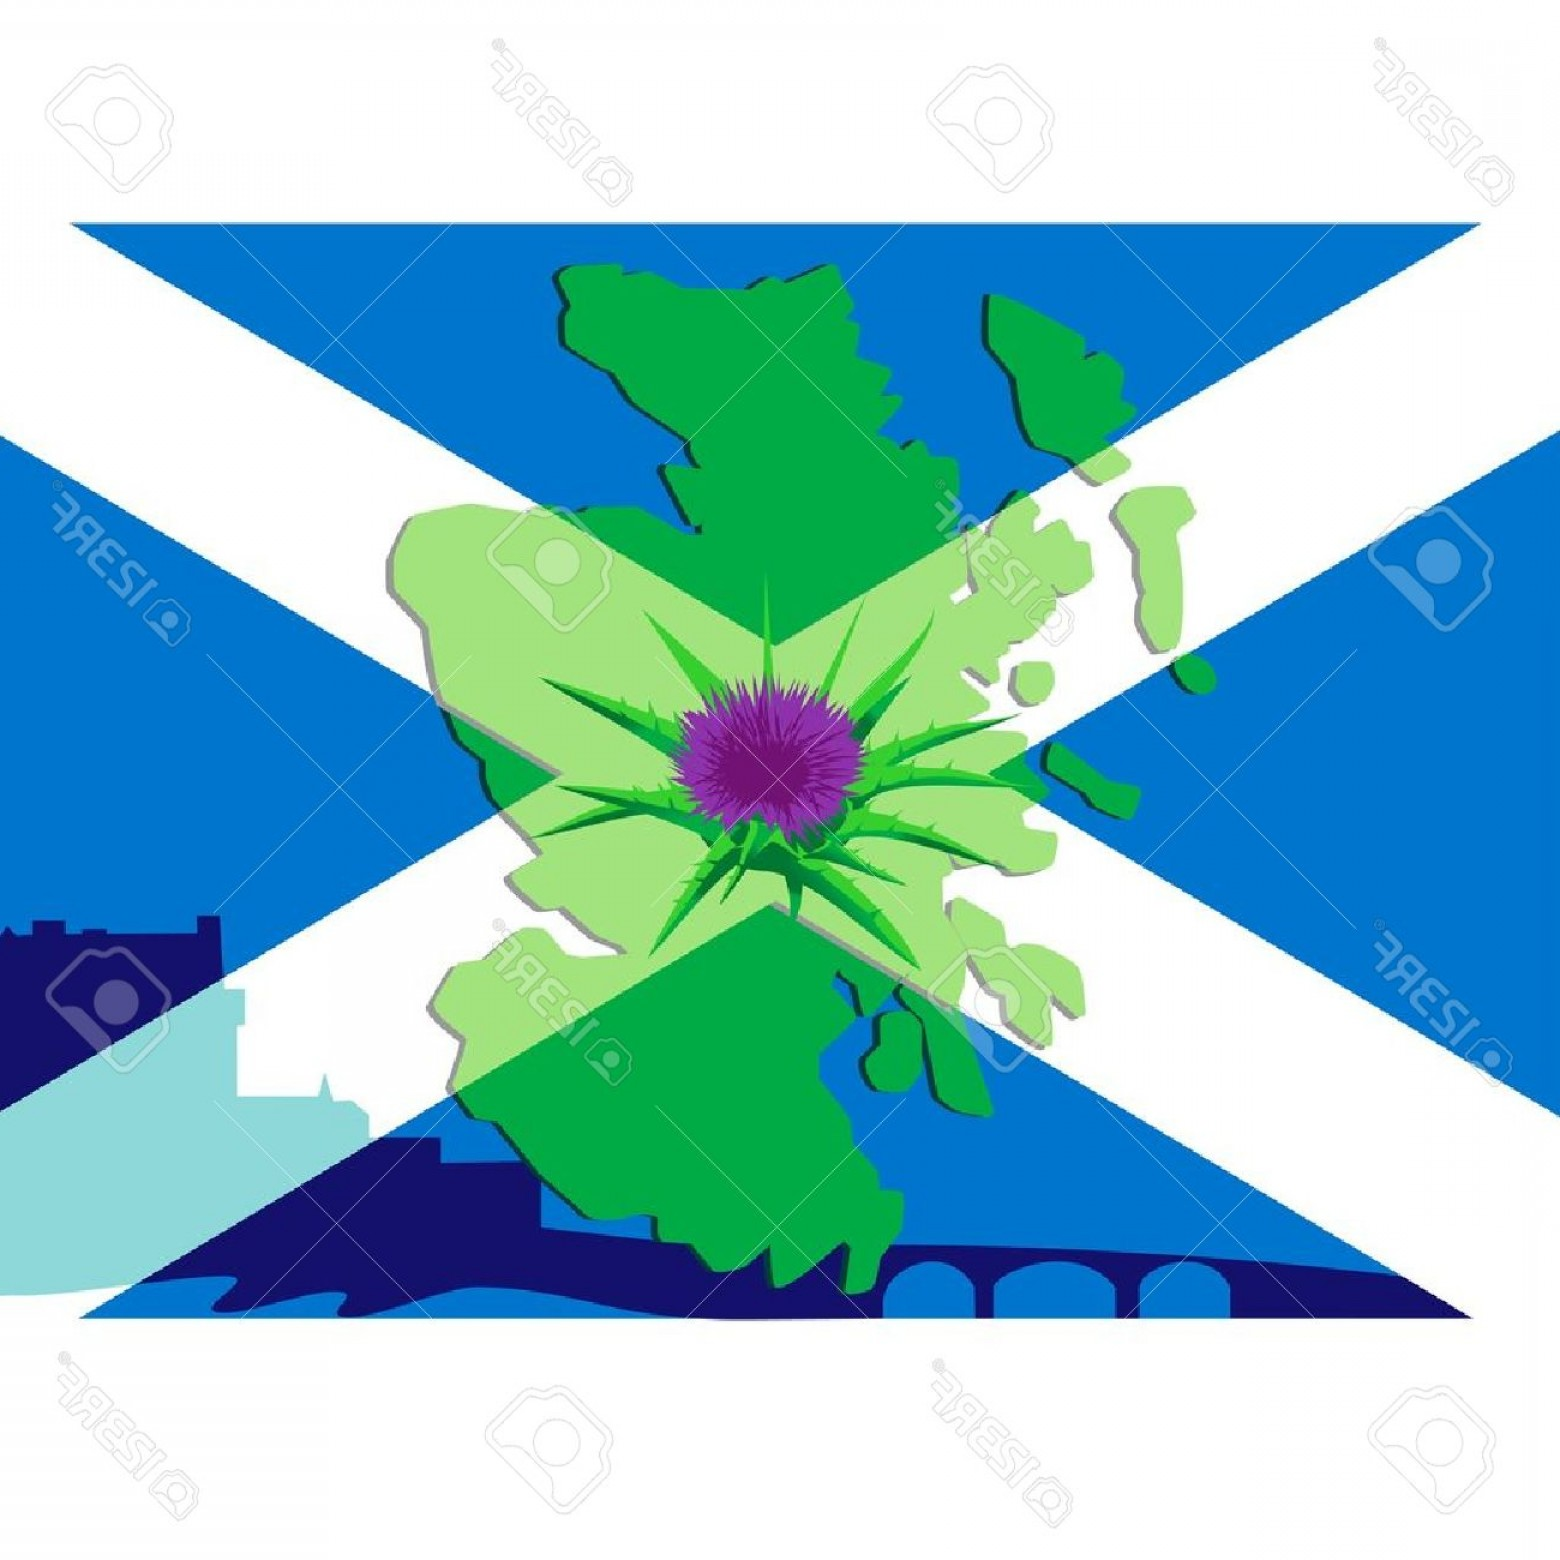 Scotland Heraldic Vector Graphic: Photothistle Flower On A Background Silhouette Maps Of Scotland And The Scottish Flag